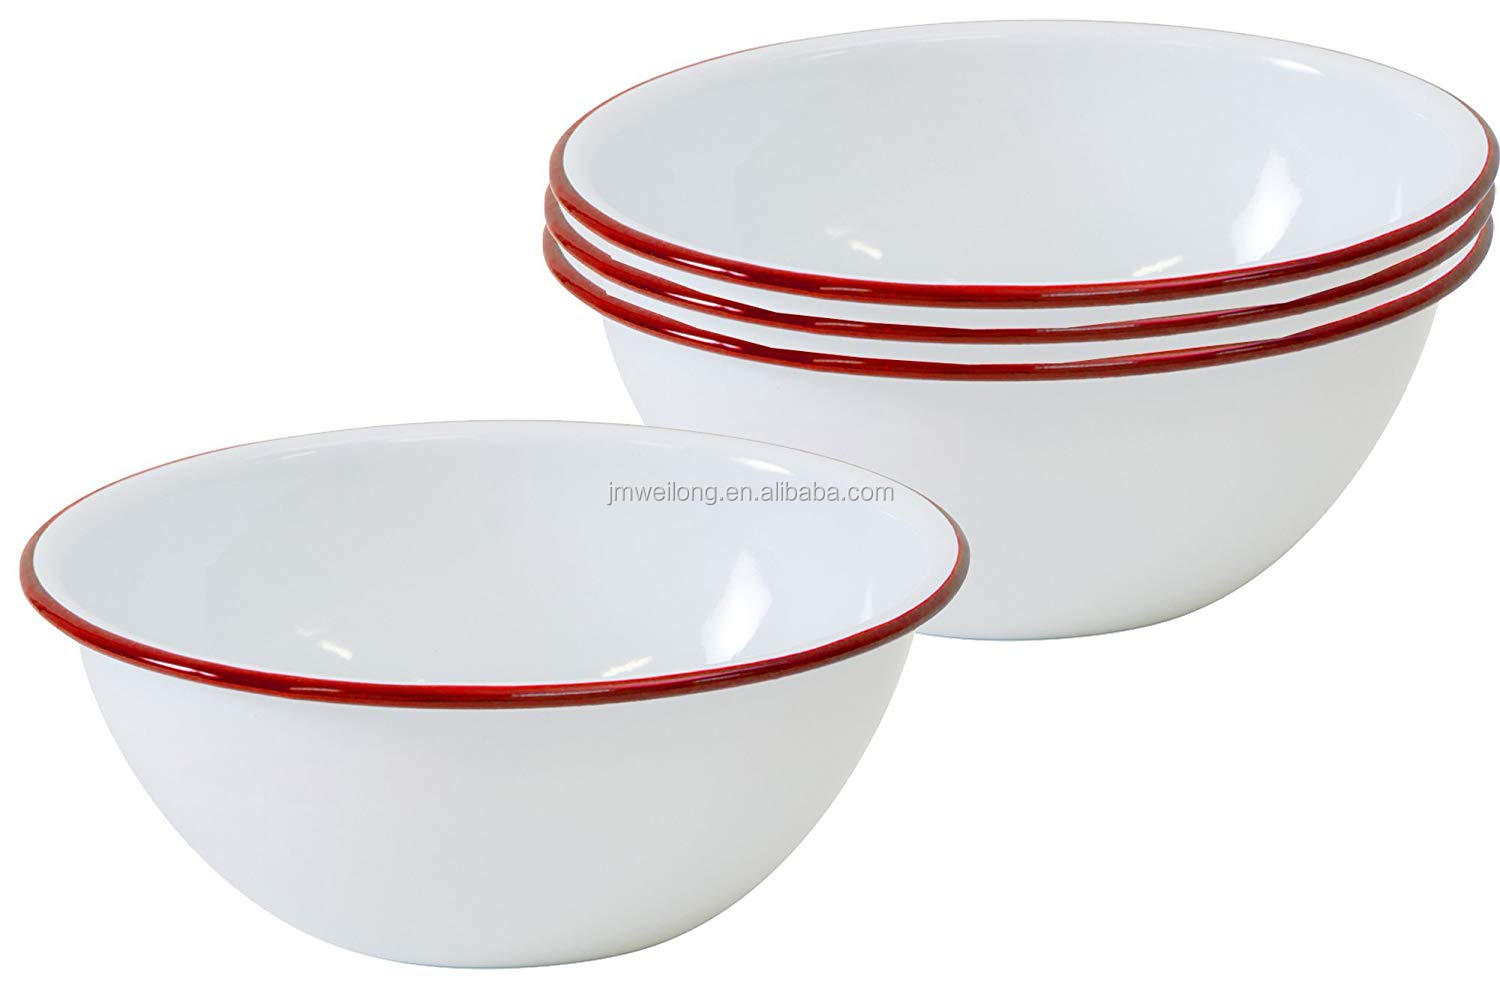 Vintage white round enamel camping outdoor metal bowls with blue rim